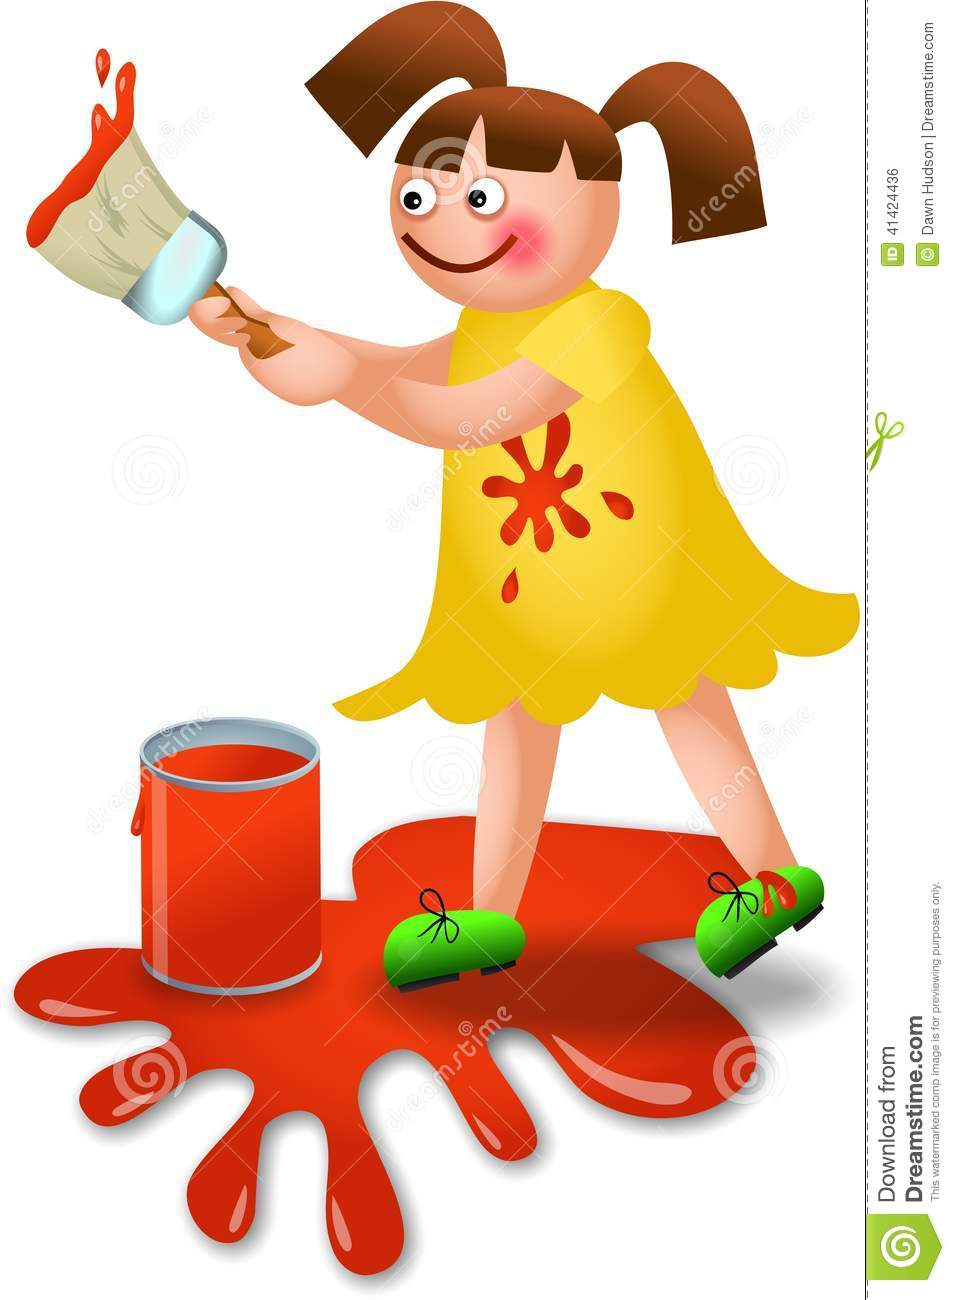 Little Girl Painting Clipart Illustration Cartoon Making Mess 41424436